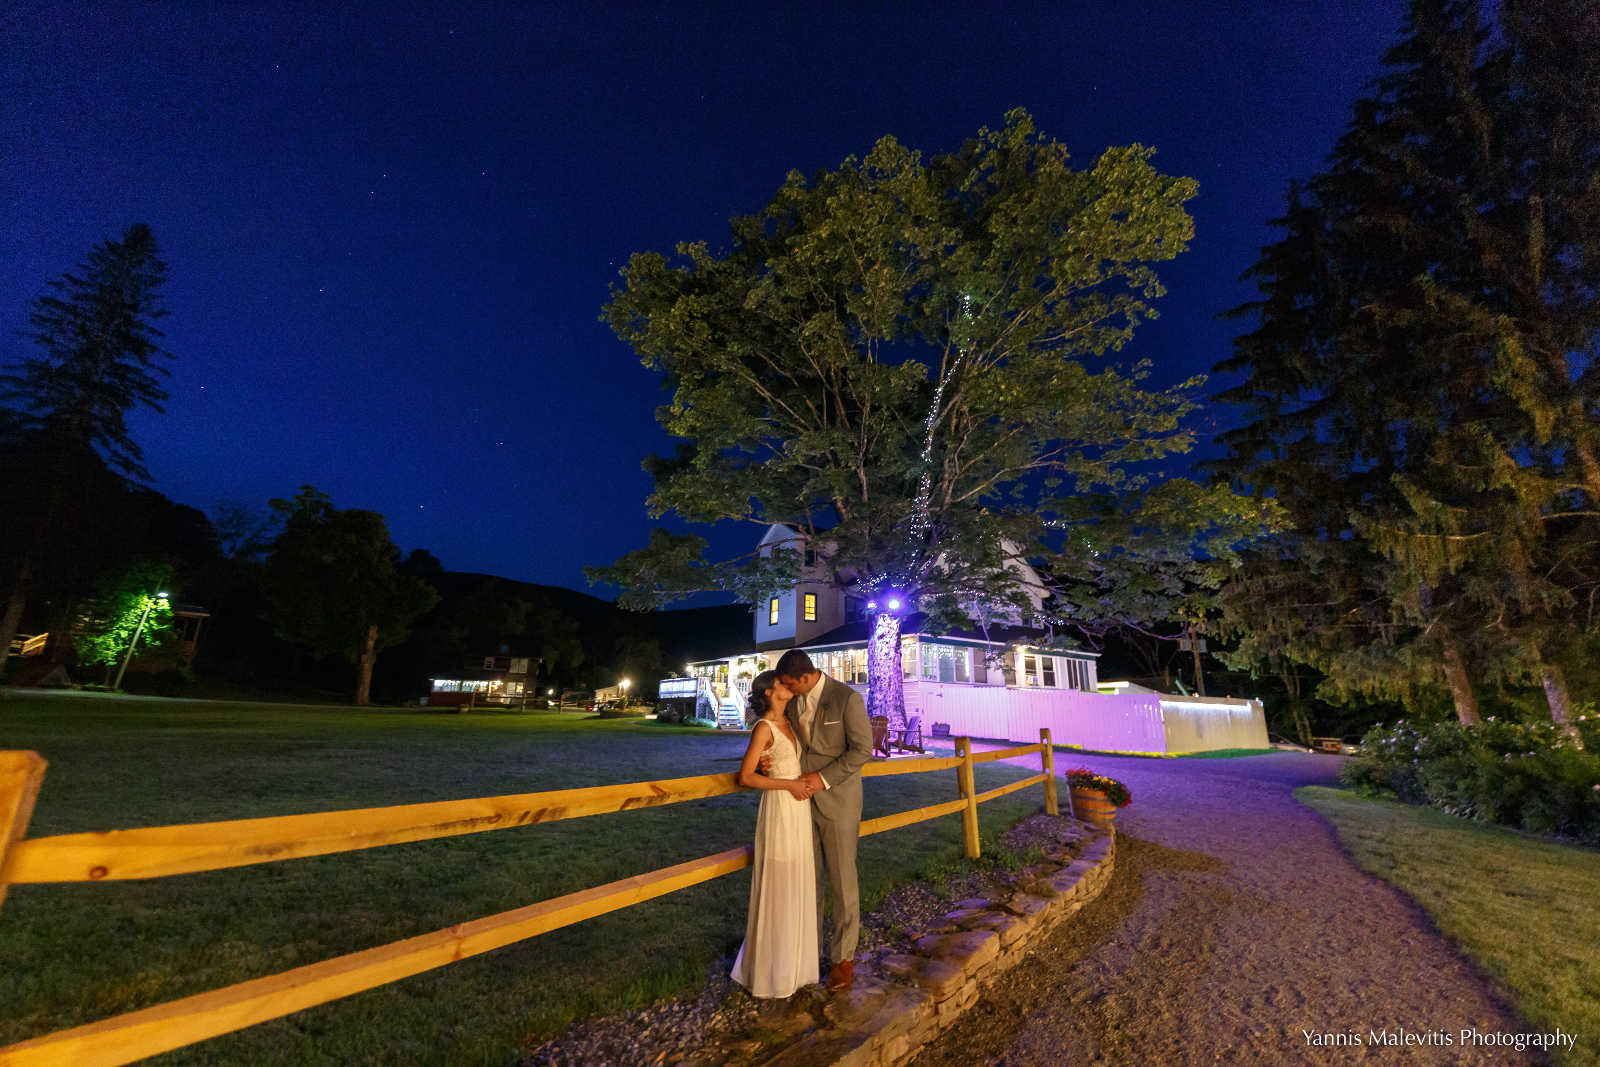 Yannis Malevitis image: bride and groom kiss at Full Moon Resort